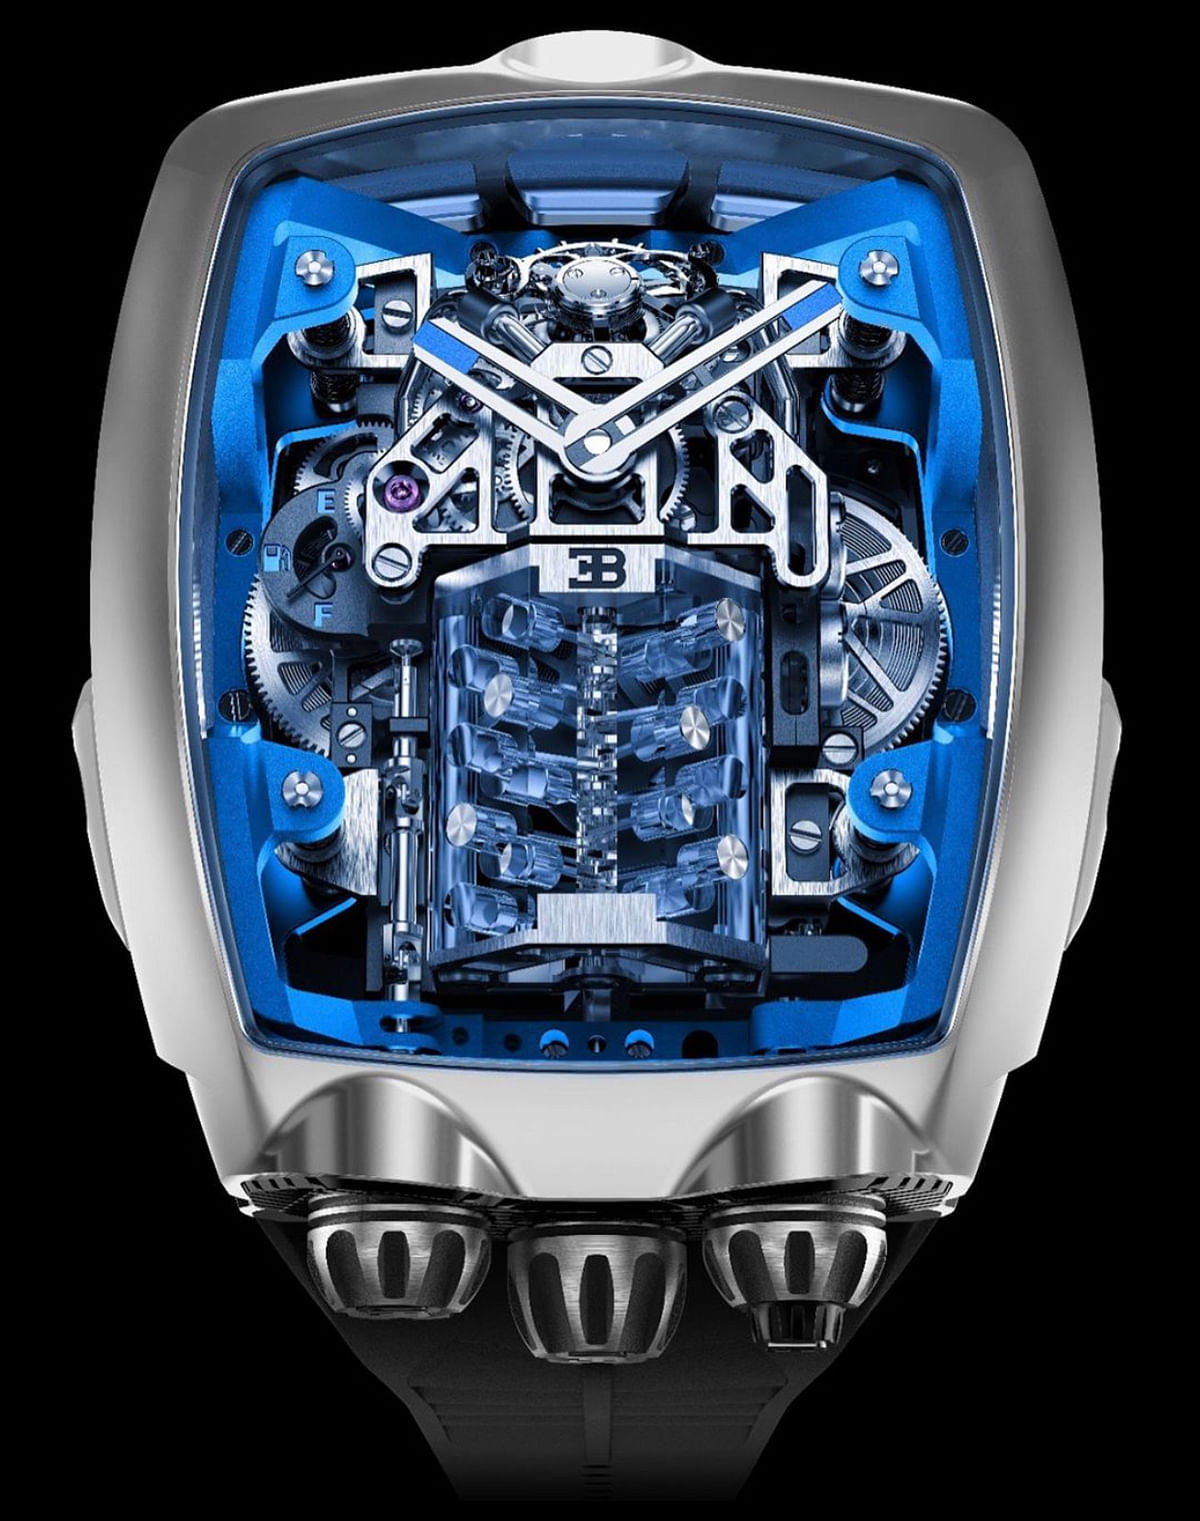 The watchmaker wanted to highlight the beauty of the W16 engine that is at the heart and centre of the Bugatti Chiron